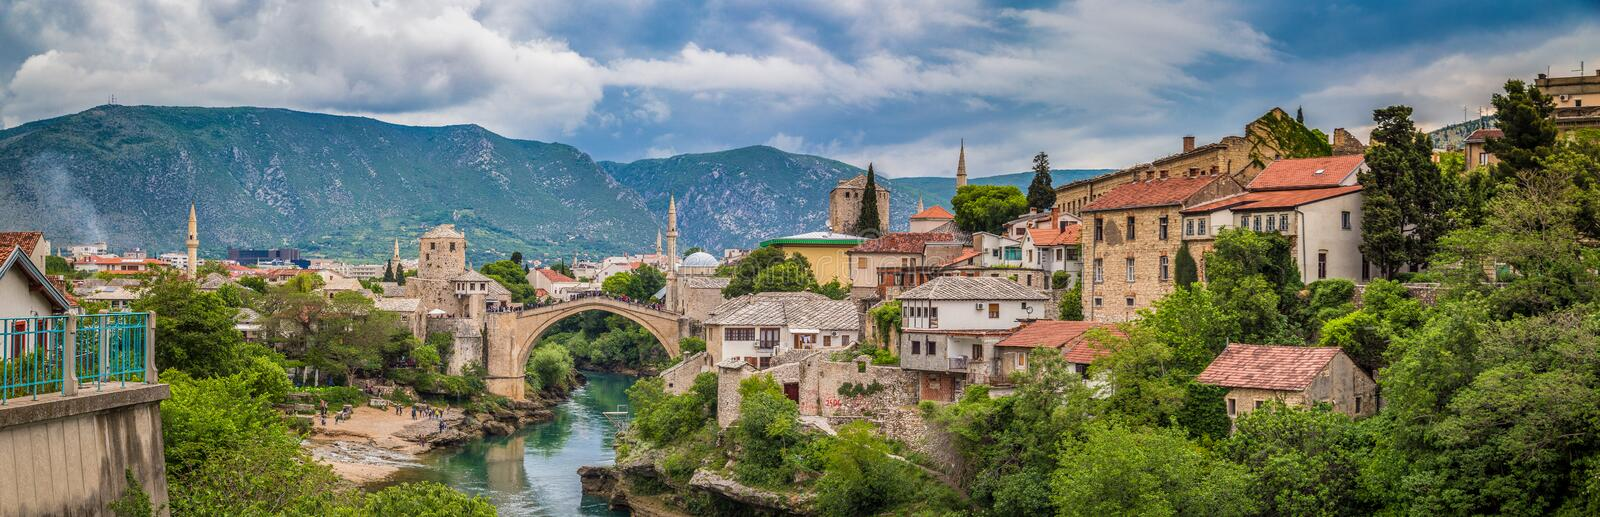 Old town of Mostar with famous Old Bridge Stari Most, Bosnia a stock photo